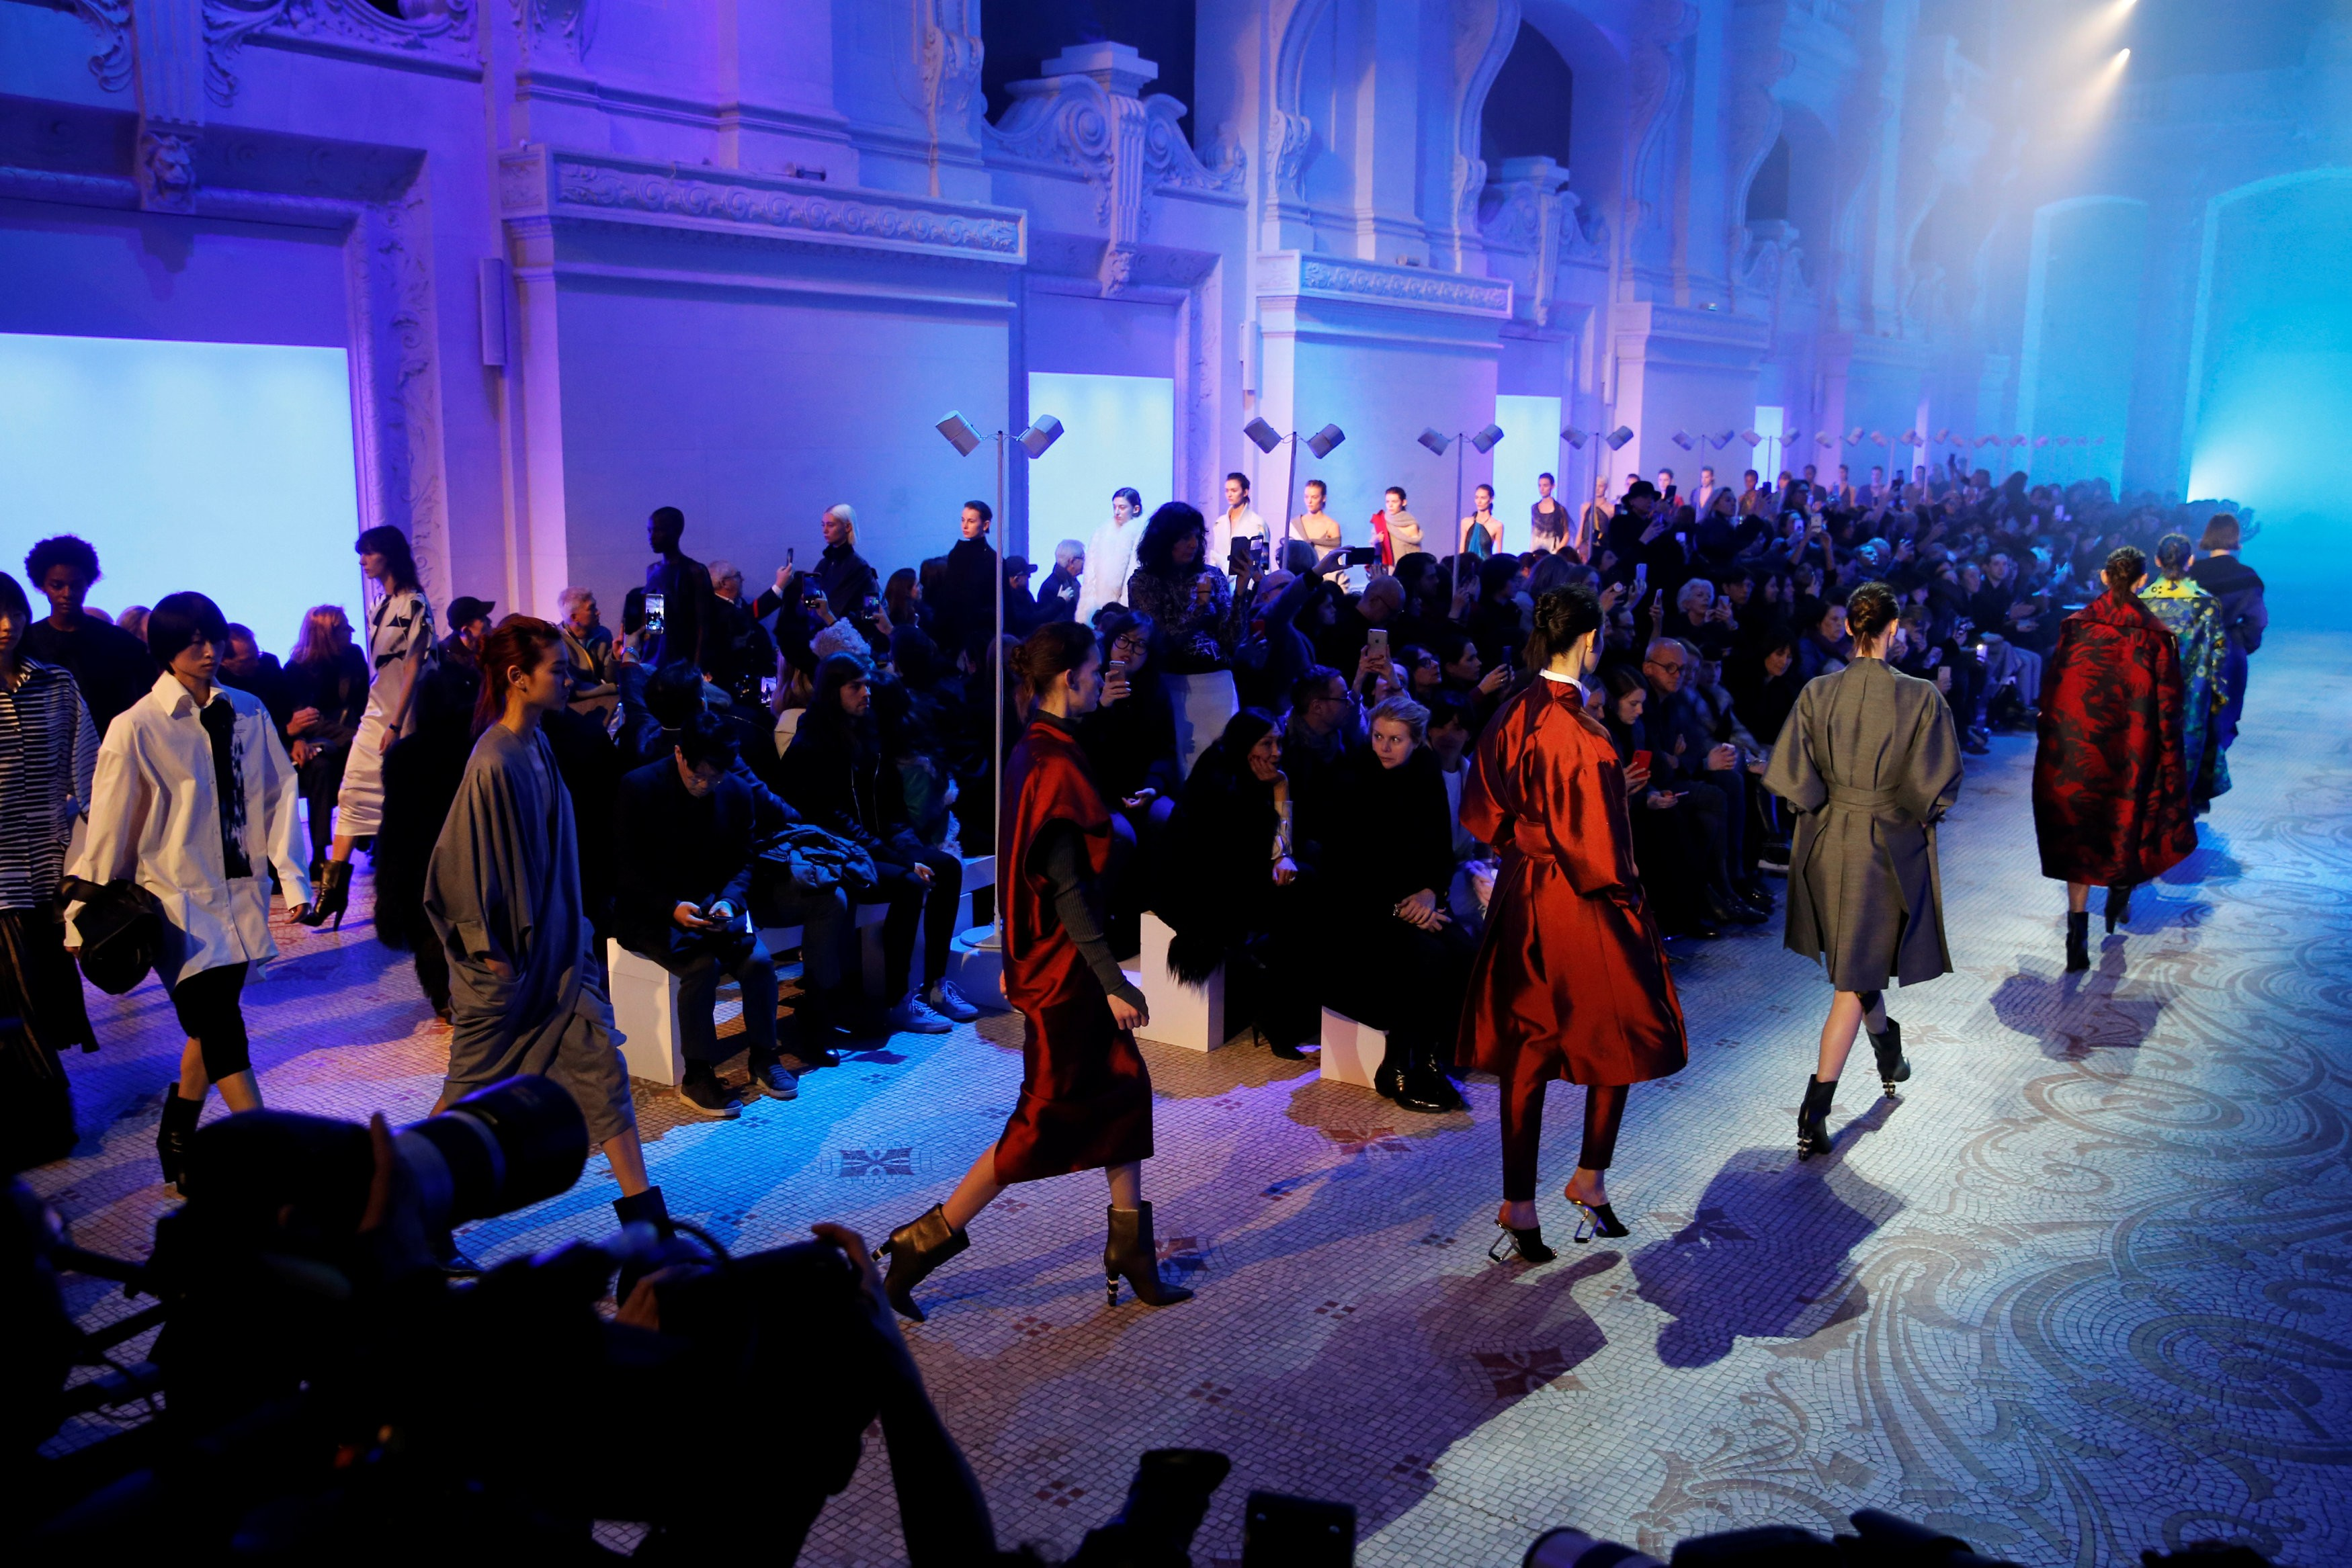 Models Present Creations By Designer Yiqing Yin As Part Of Her  Autumn/winter 2018/2019 Womenu0027s Ready To Wear Collection For Fashion House  Paul Poiret During ...